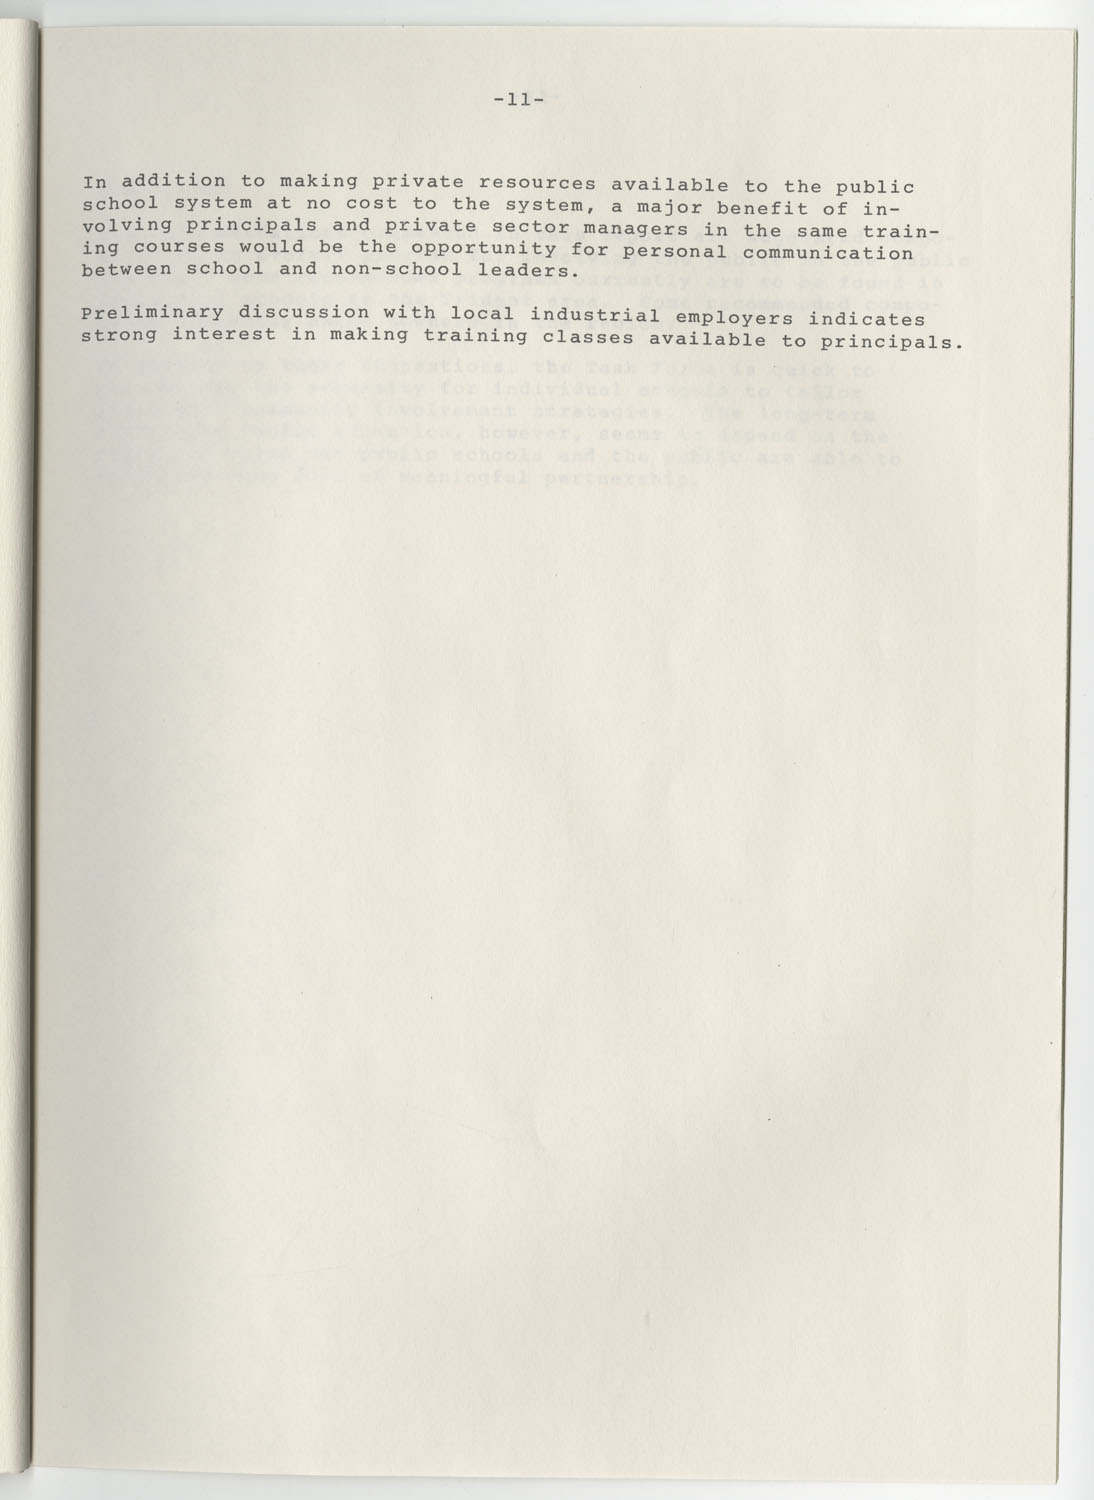 Trident 2000 Task Force Reports on Education, June 1978, Page 11